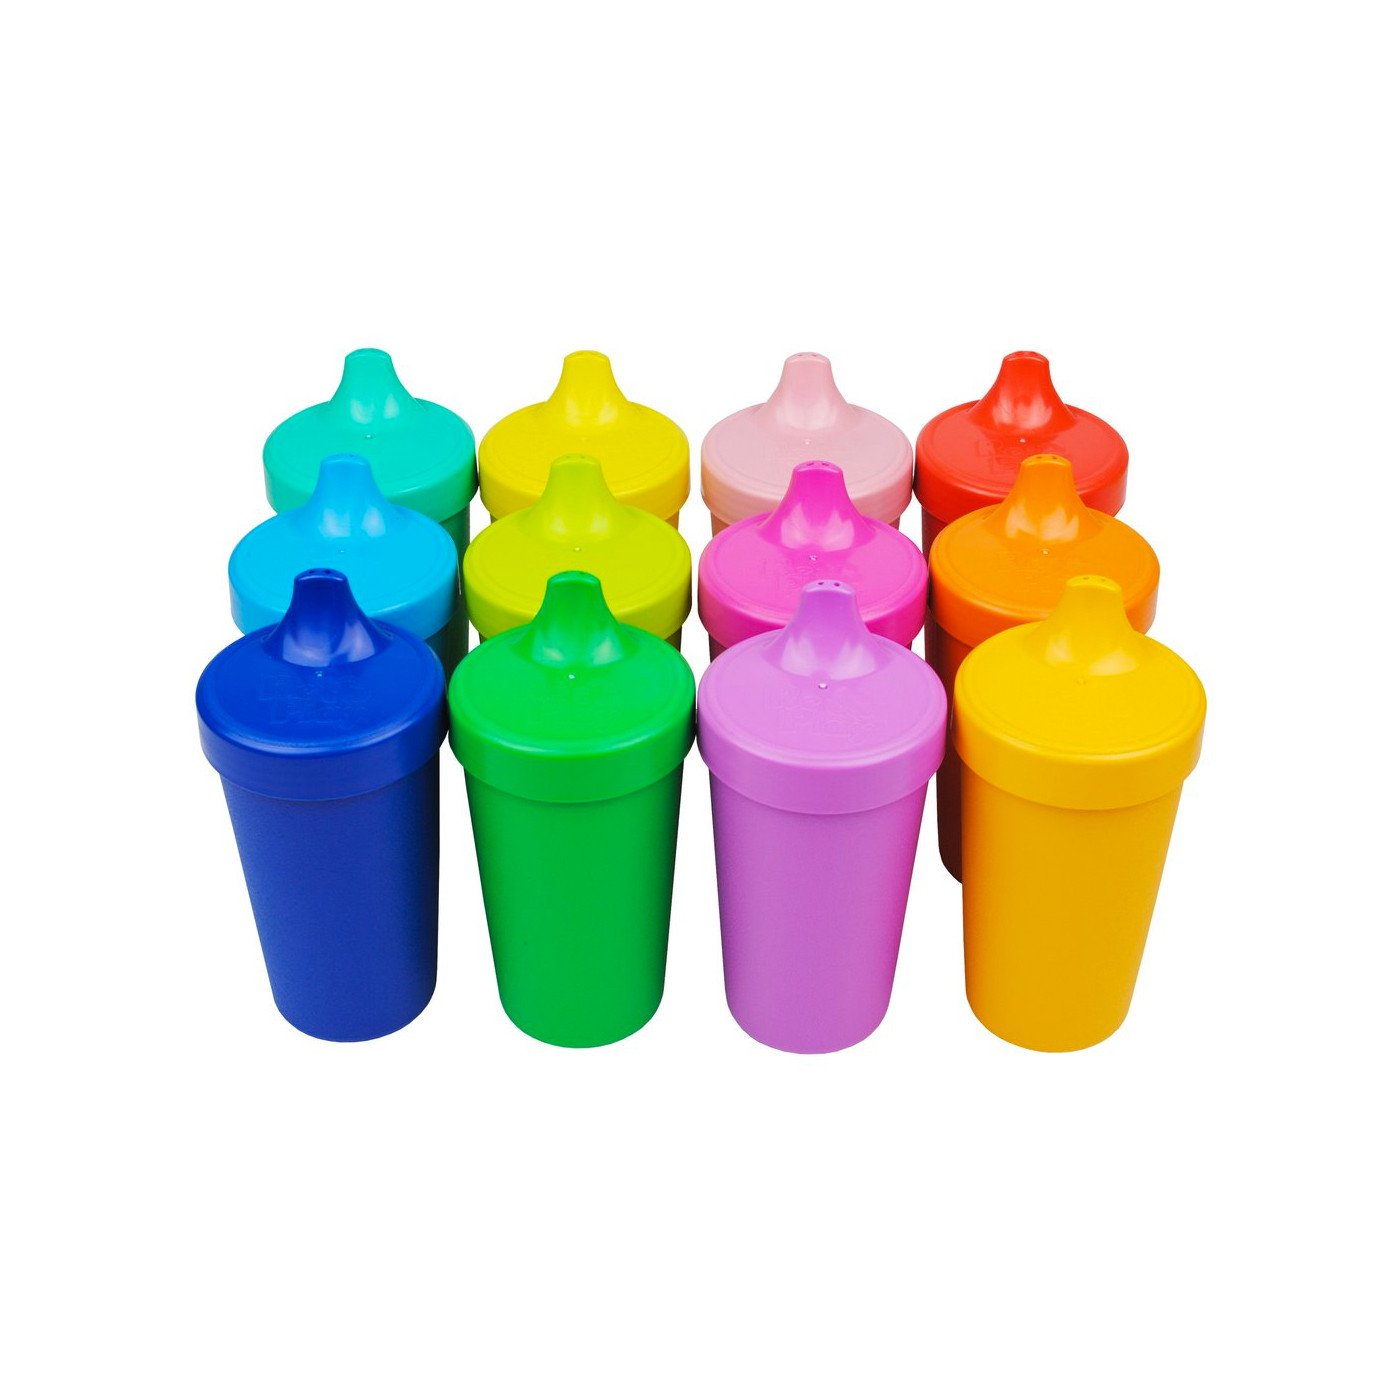 Replay 12 Piece Sets Rainbow Replay Dinnerware Sippy Cup at Little Earth Nest Eco Shop